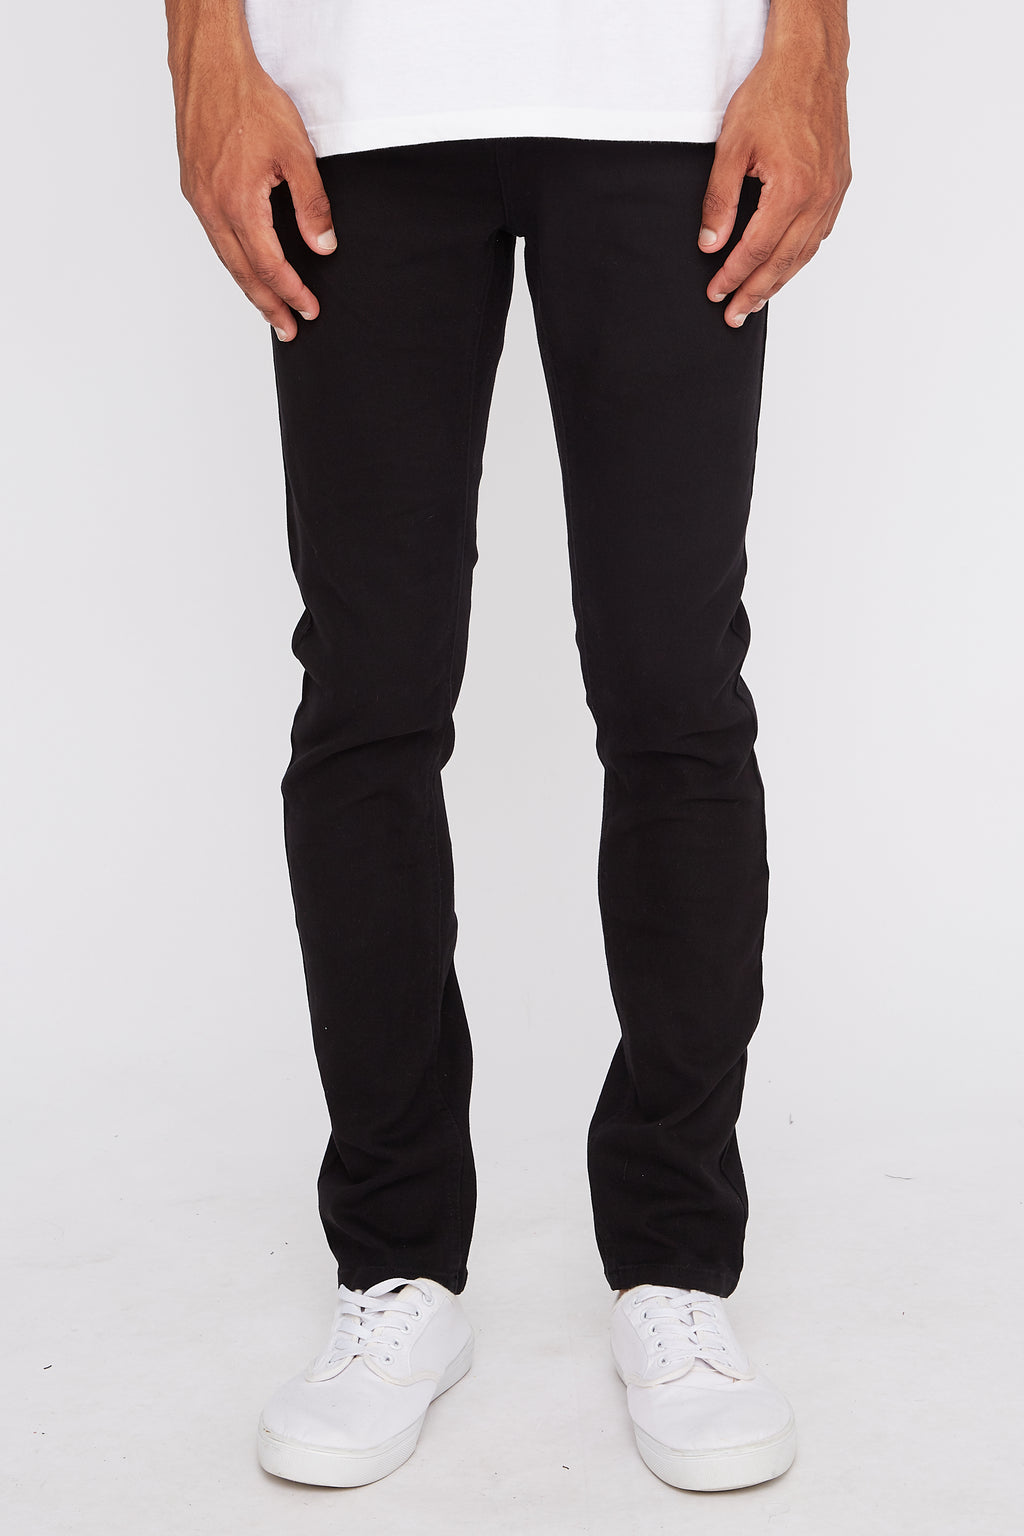 Zoo York Mens Stretch Skinny Jeans